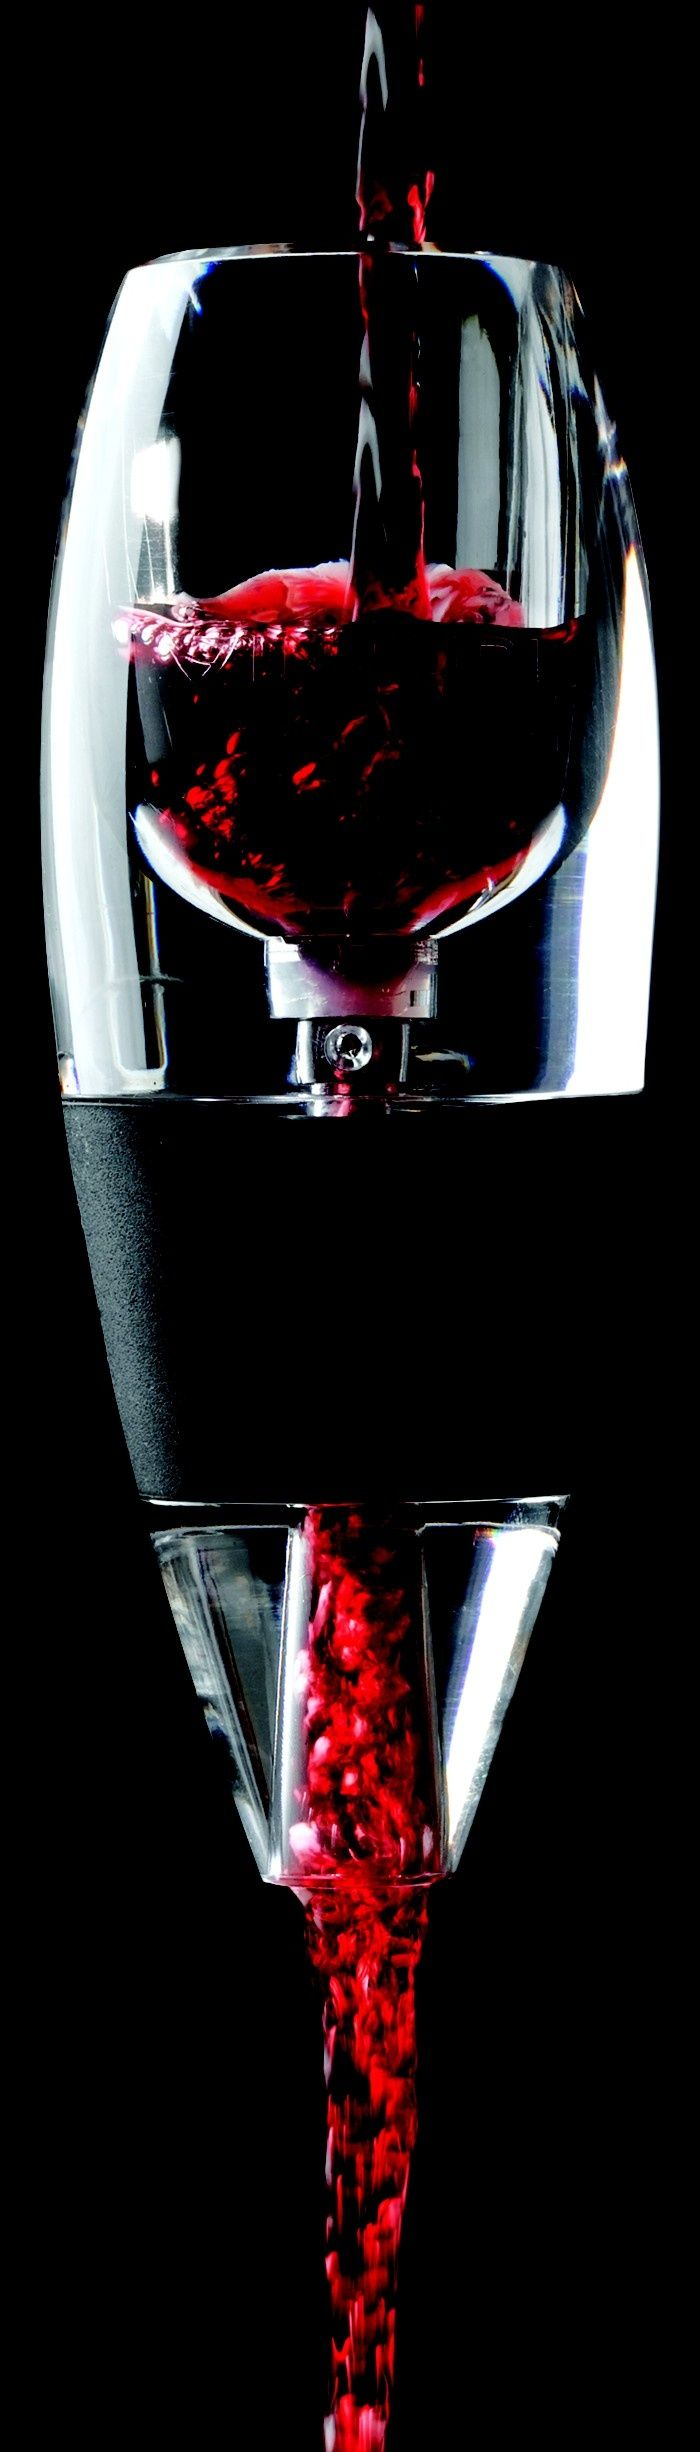 Vinturi Red Wine Aerator-- Available at the Northwoods Niche Gift Shop at Grizzly Jack's Grand Bear Resort Utica, IL next to Starved Rock State Park. www.grizzlyjacksresort.com